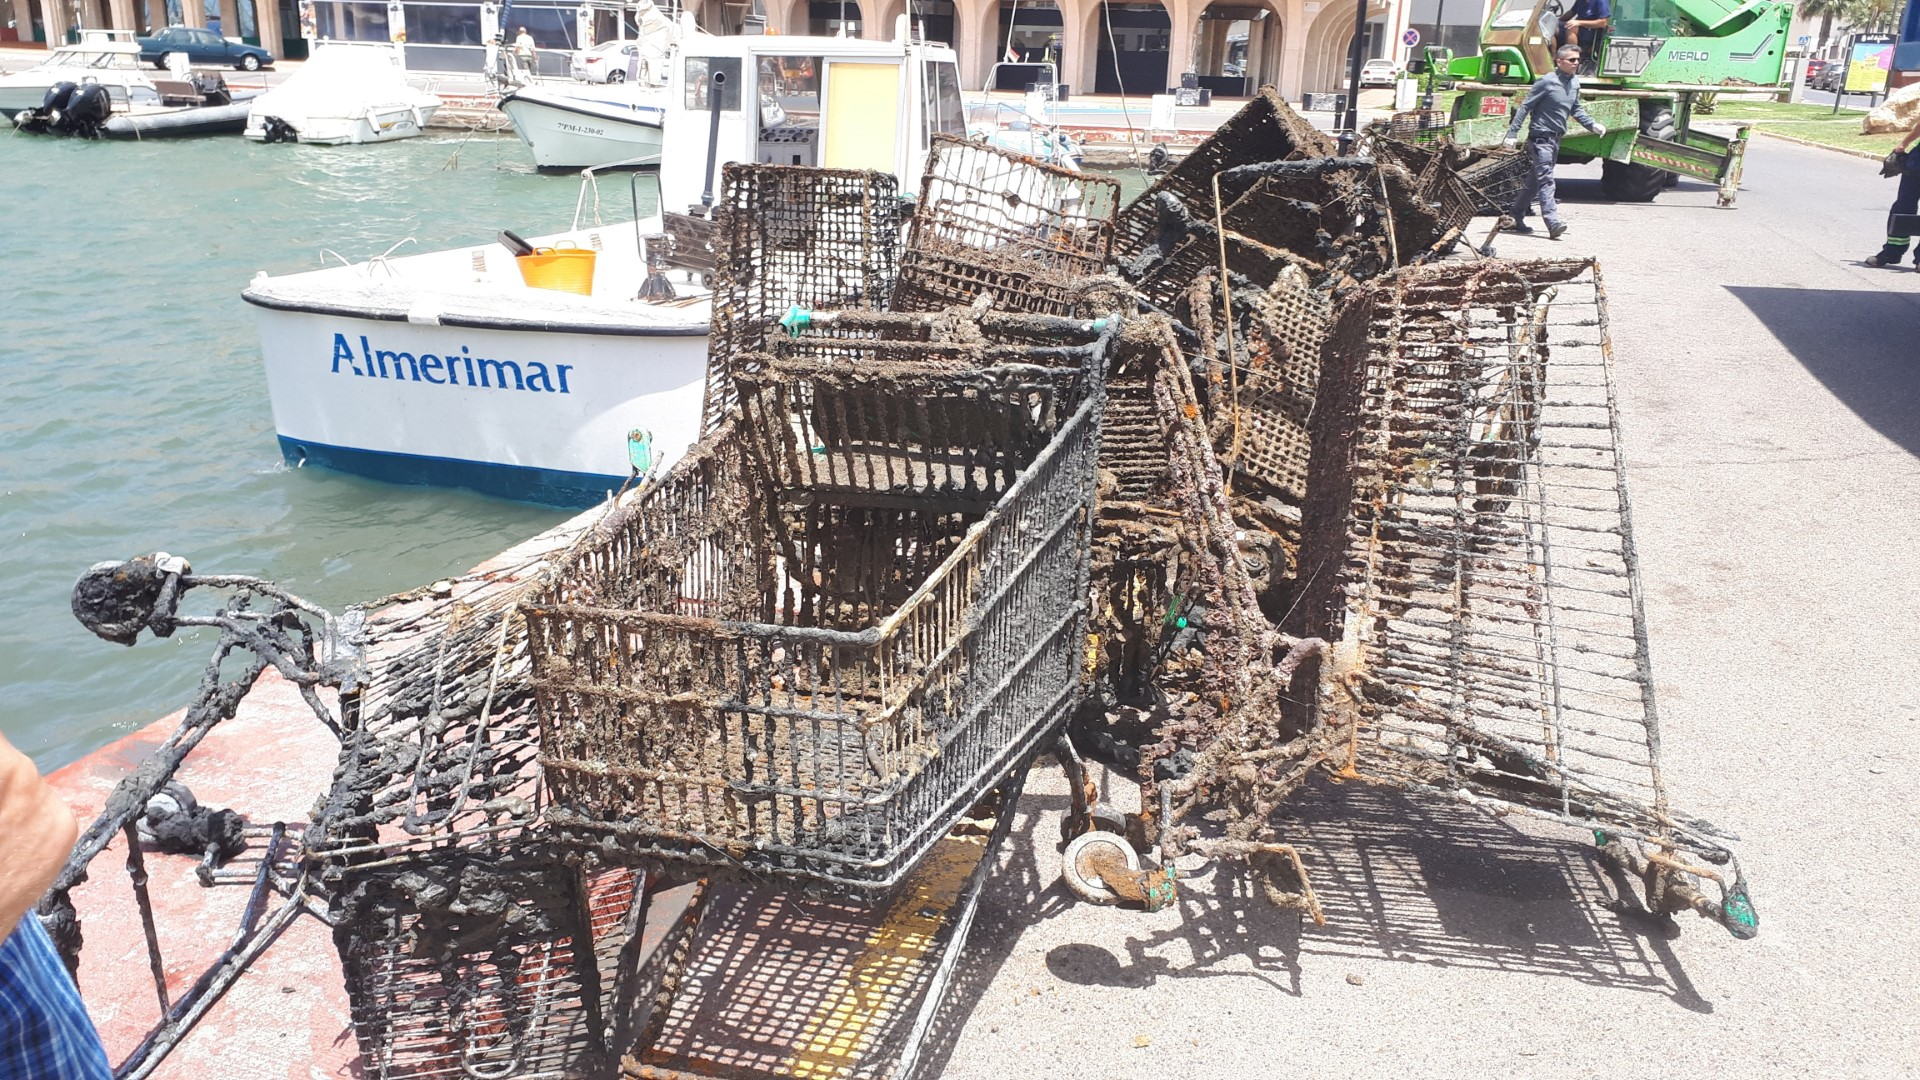 Mercadona Trolleys Marina 8 July 19